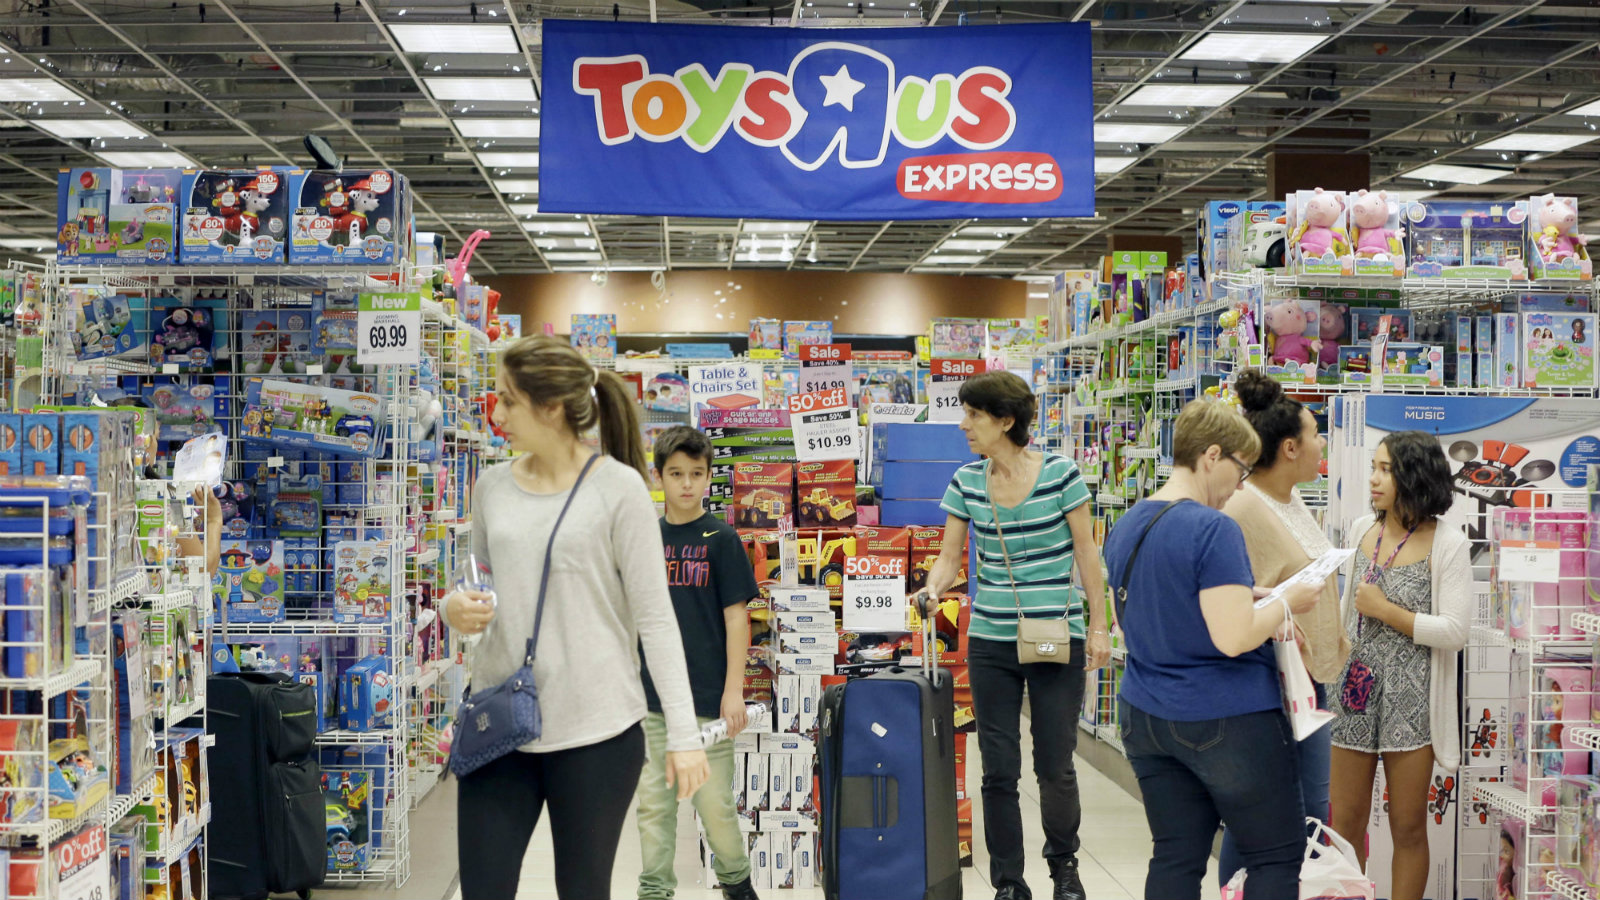 Facing A Financial Crisis At Home Toys R Us Is Joining Hands With